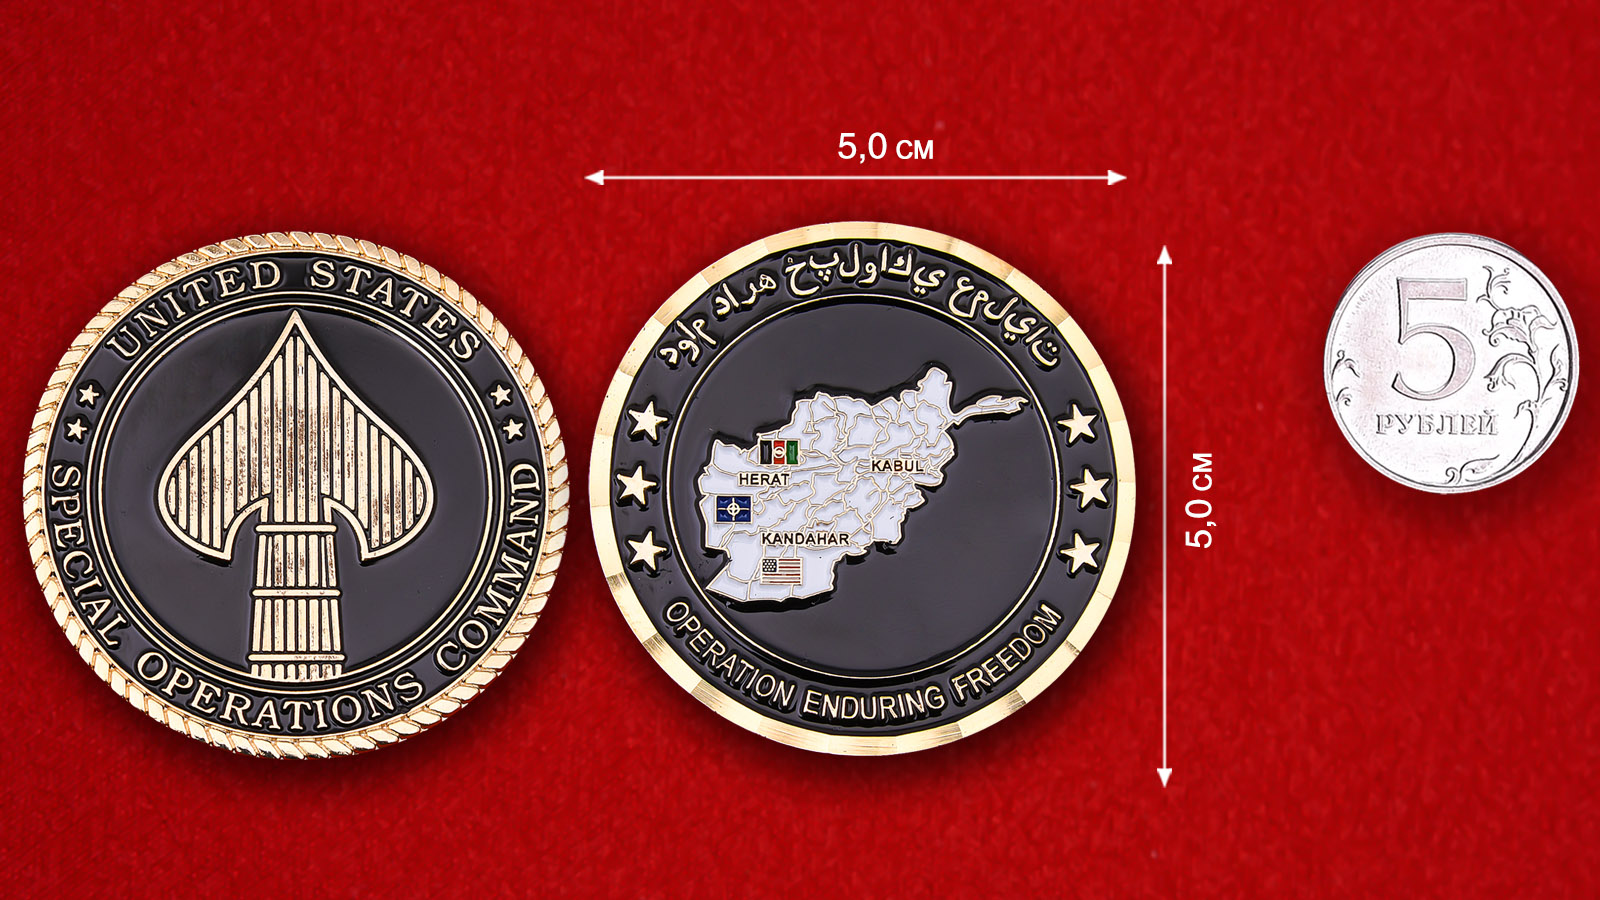 US Special Operations Command Operation Enduring Freedom Challenge Coin